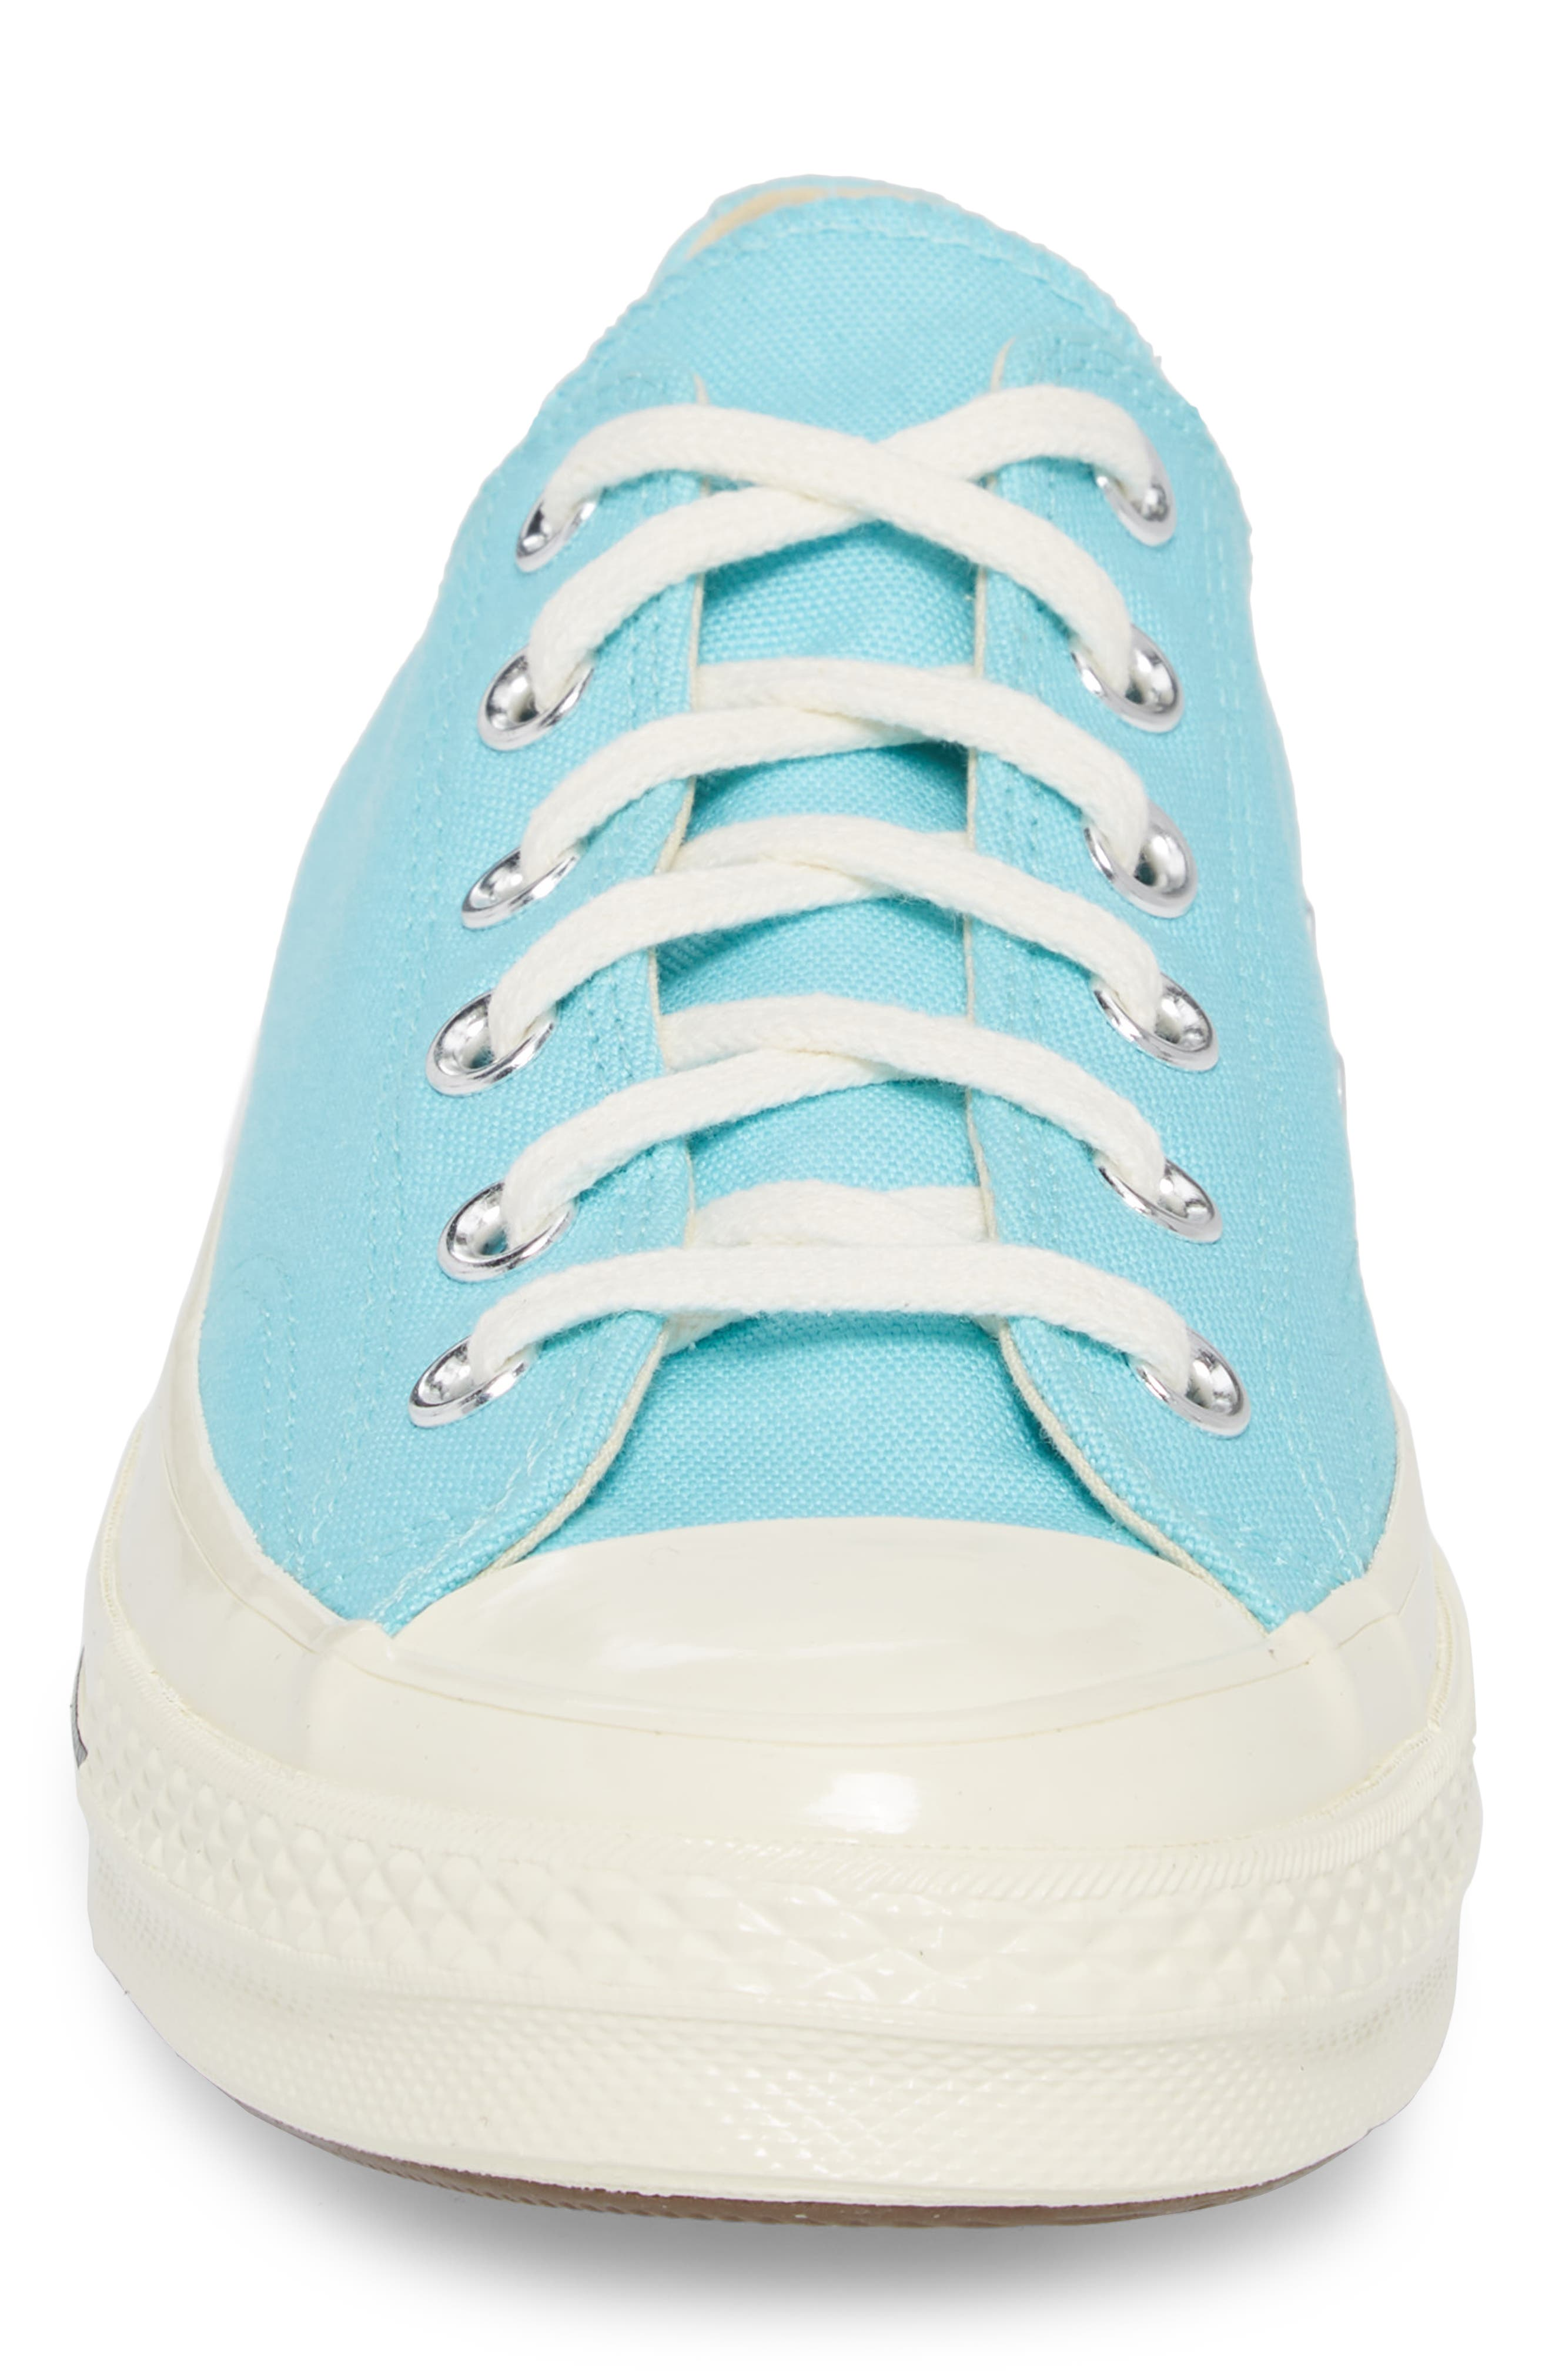 Chuck Taylor<sup>®</sup> All Star<sup>®</sup> 70 Brights Low Top Sneaker,                             Alternate thumbnail 4, color,                             Beached Aqua